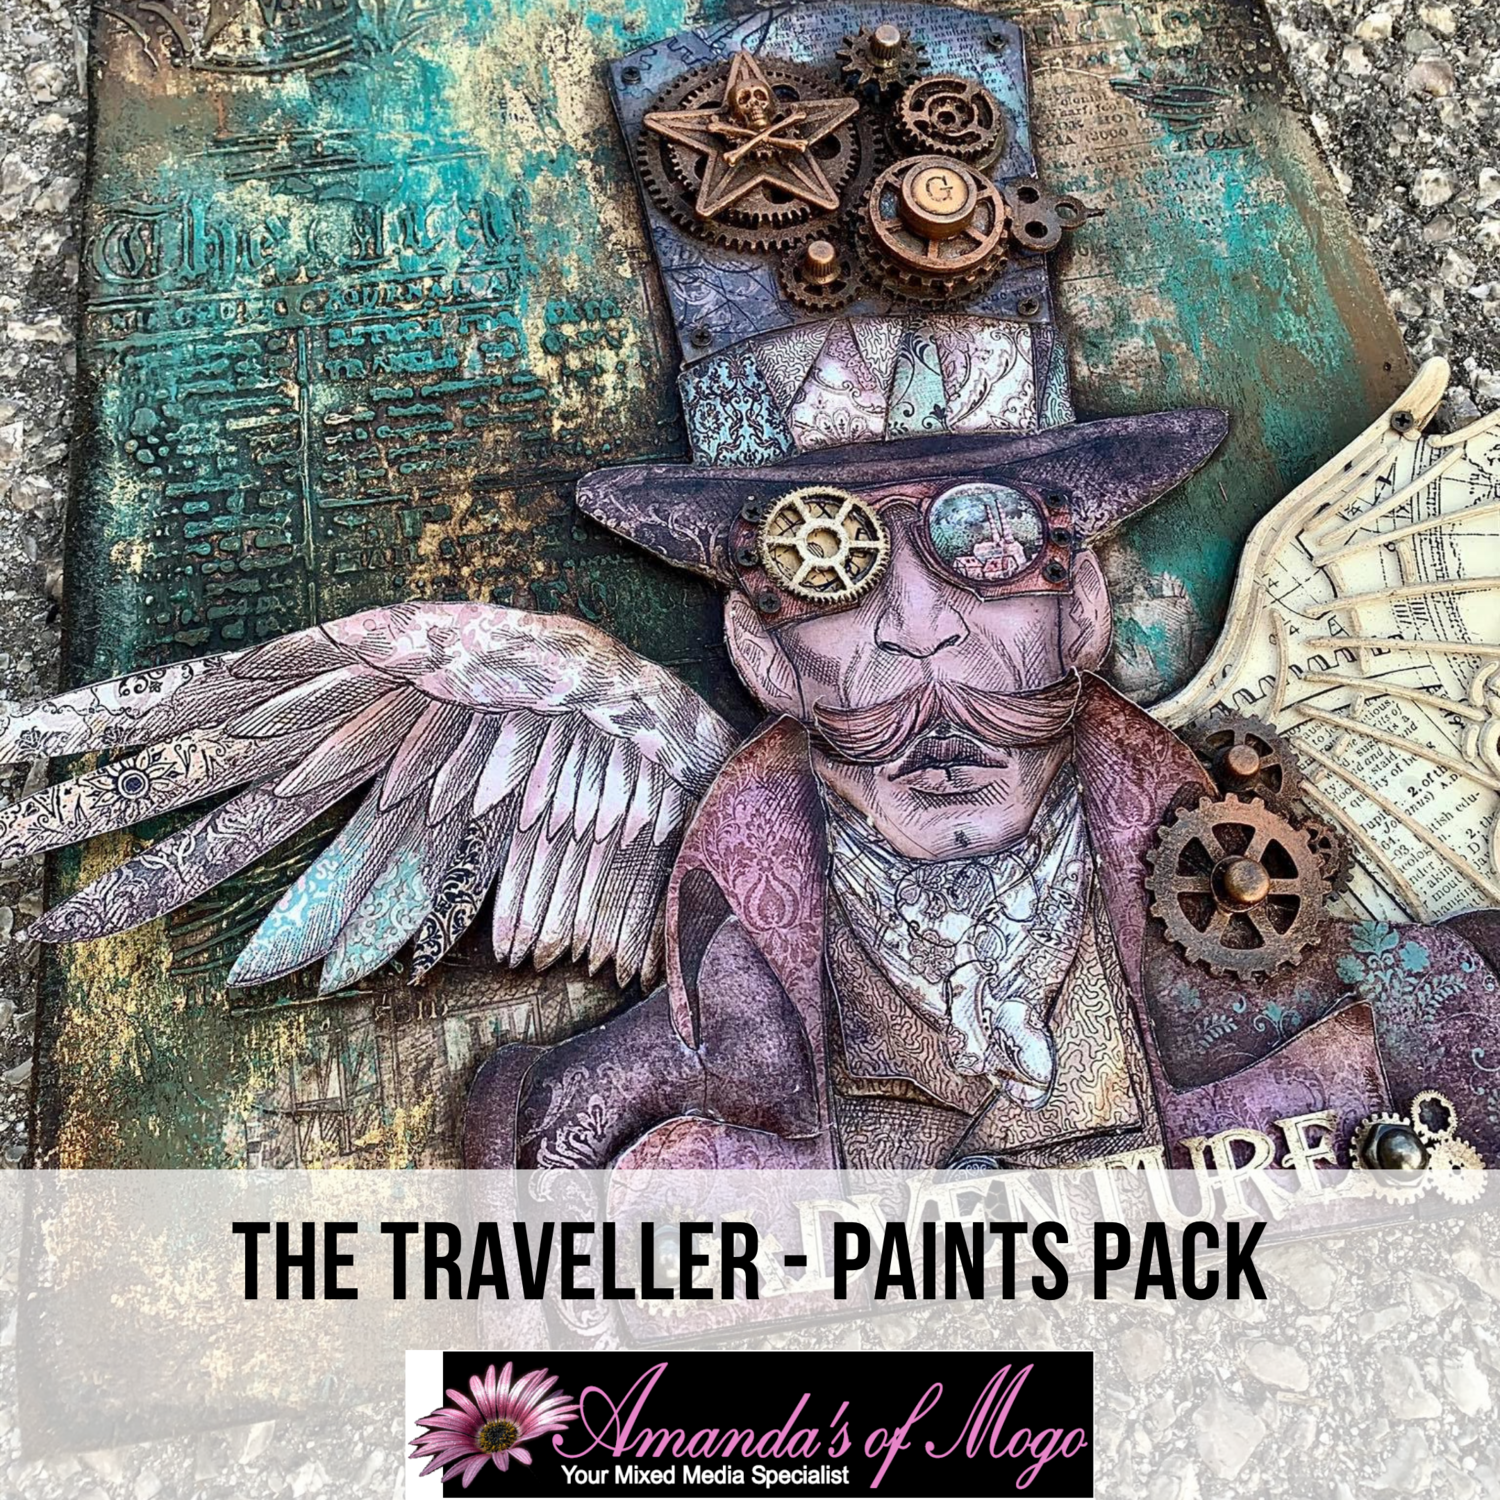 Antonis Tzanidakis' The Traveller - Paints Pack